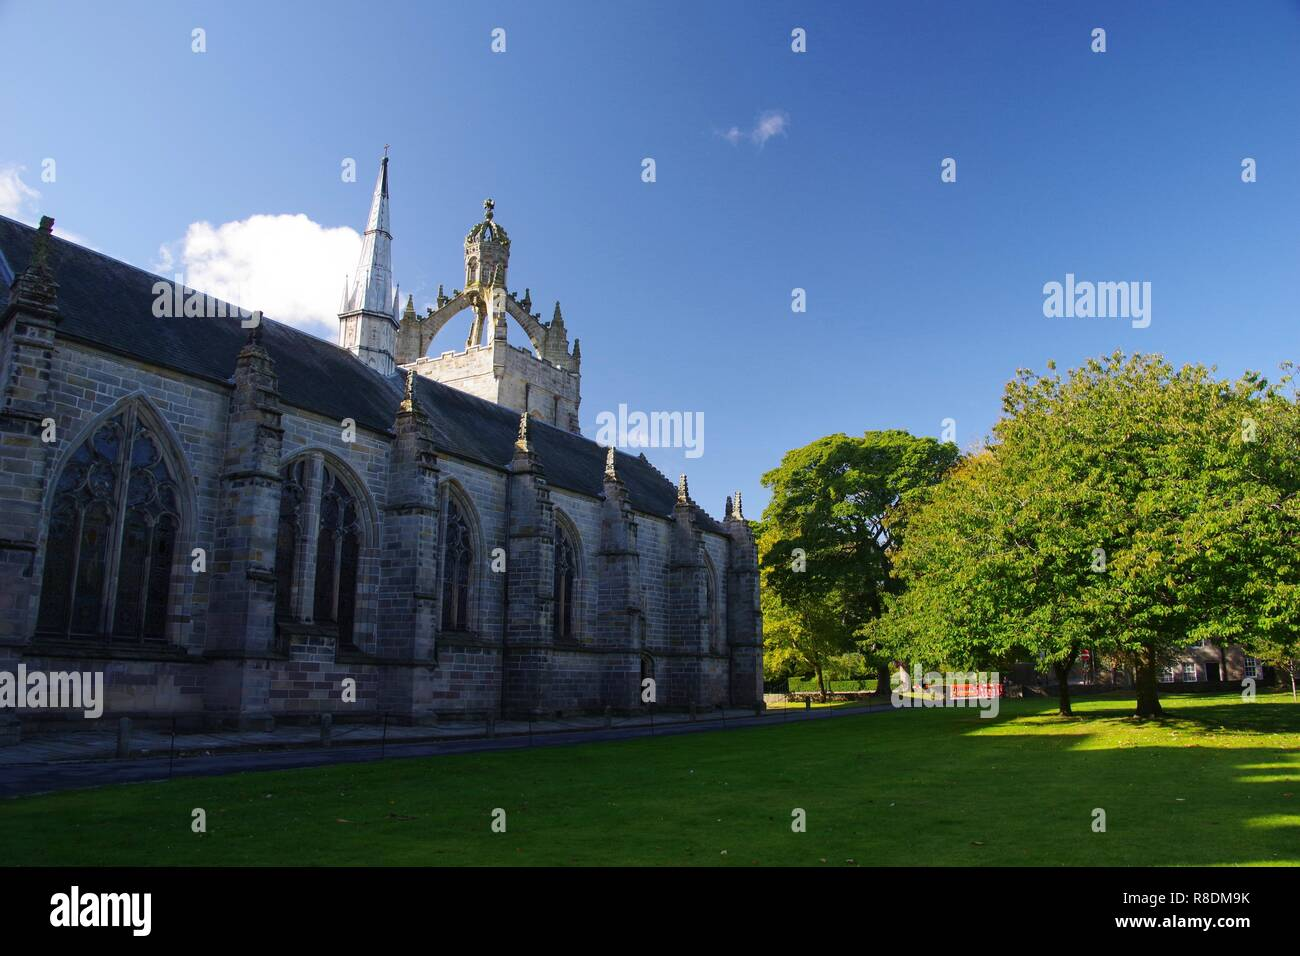 Imperial Crown Tower of Kings College Chapel at the University of Aberdeen on a Sunny Autumn Day. Scotland, UK. - Stock Image